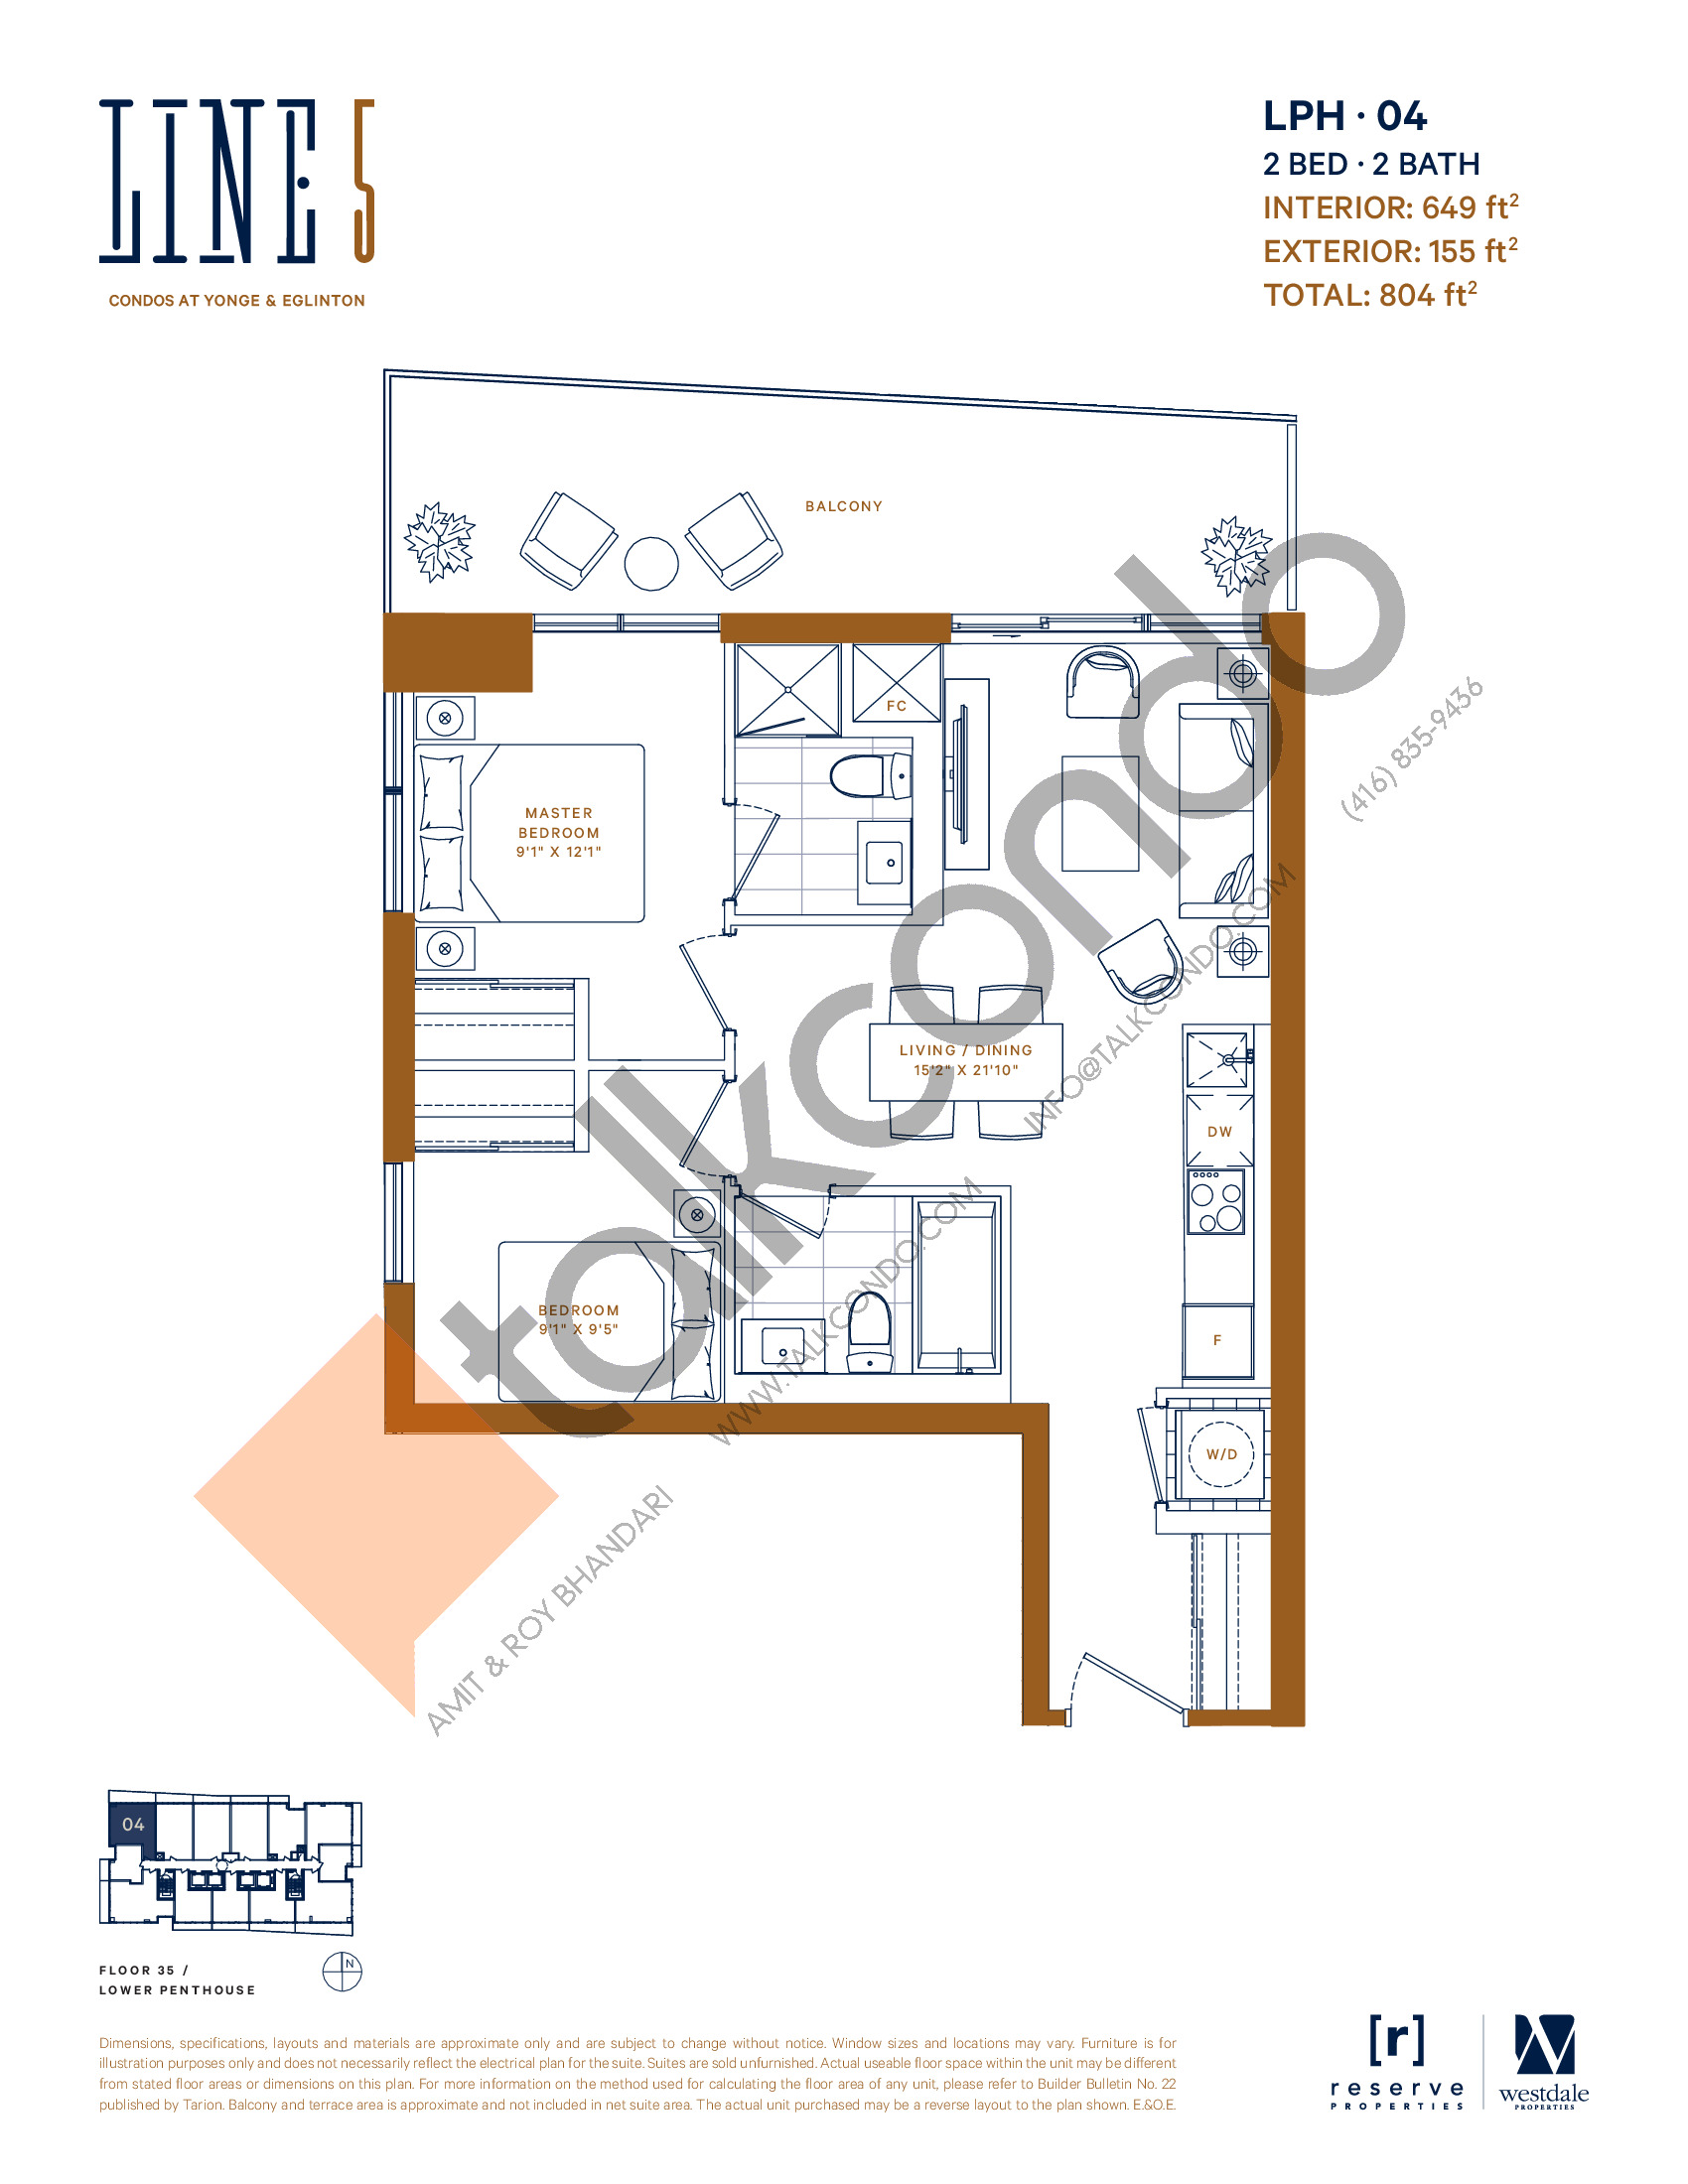 LPH-04 Floor Plan at Line 5 Condos - 649 sq.ft